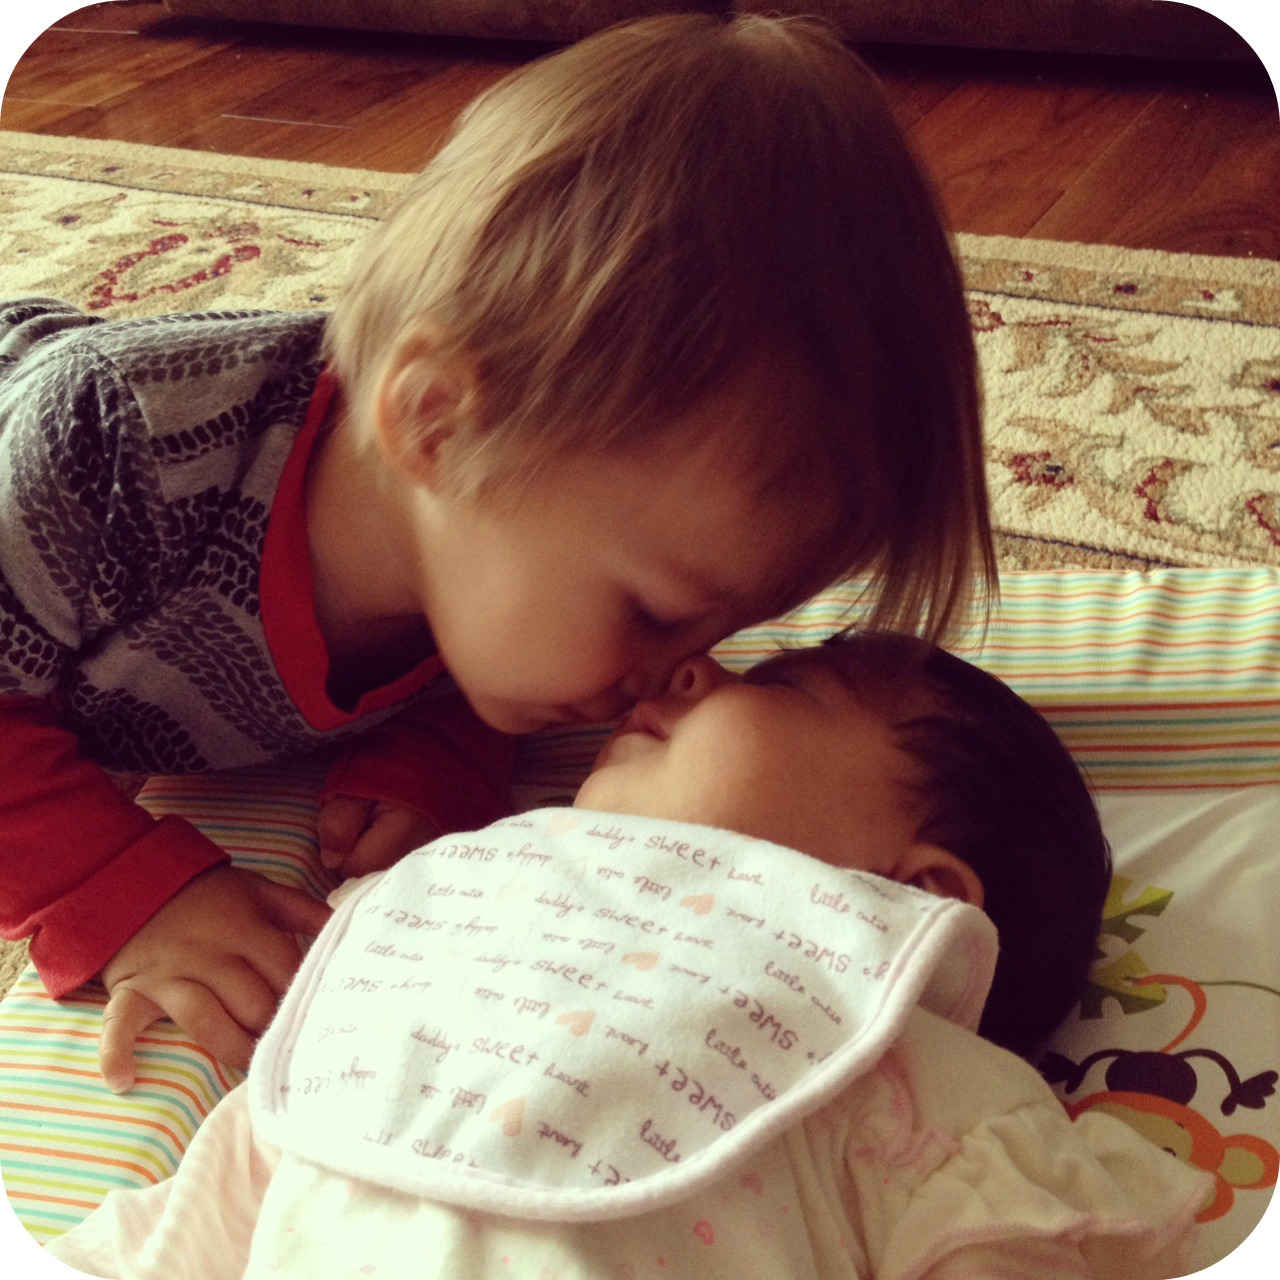 The beauty of kisses